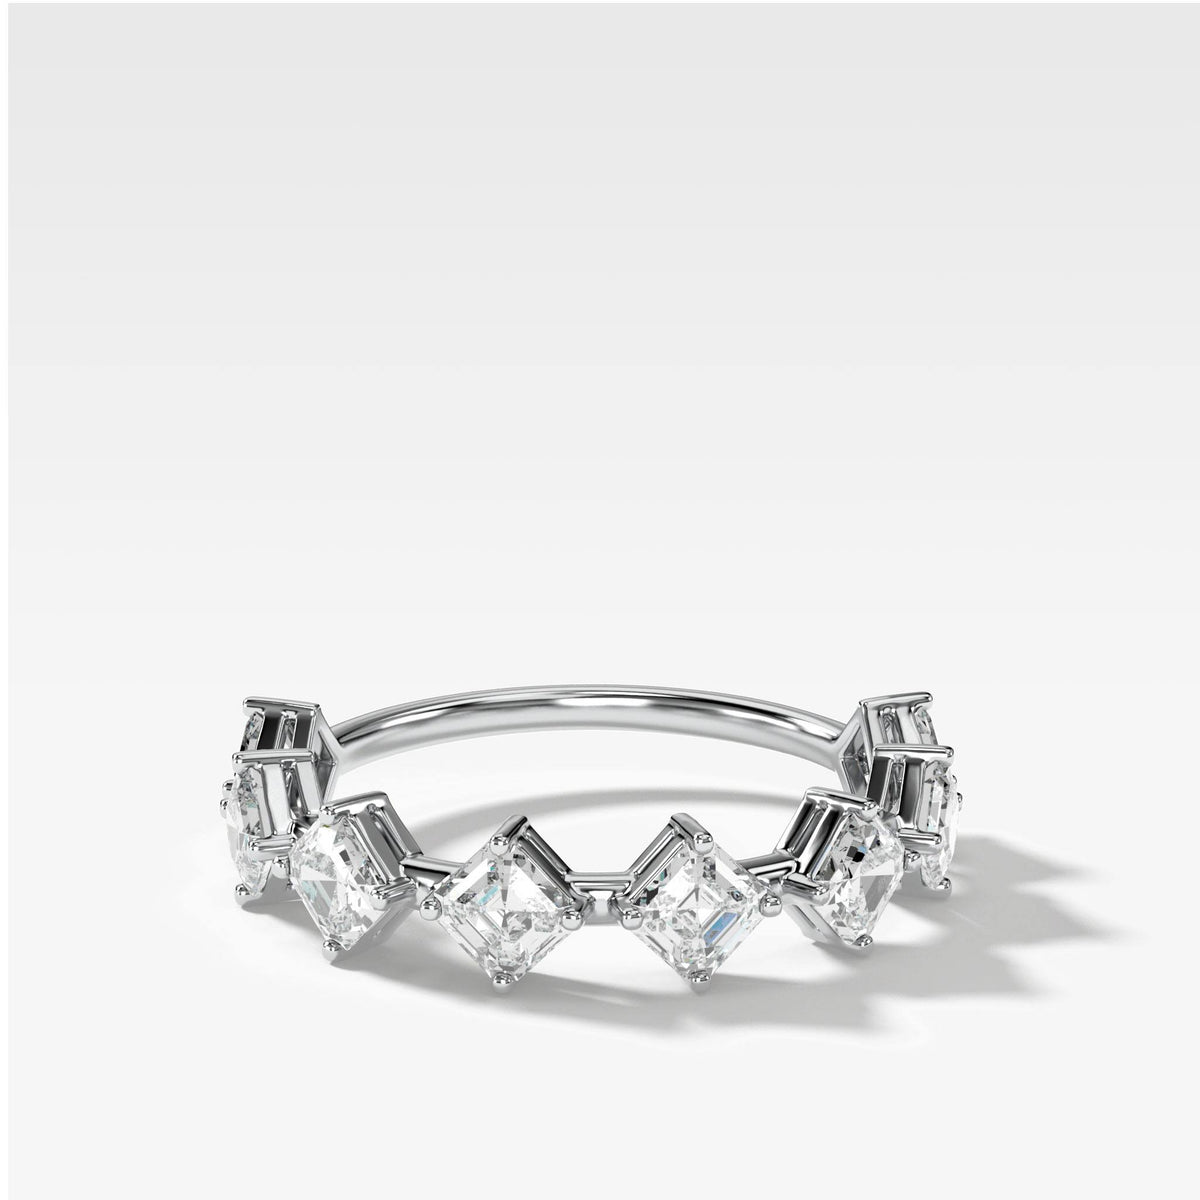 Spaced Asscher Cut Diamond Band in White Gold by Good Stone